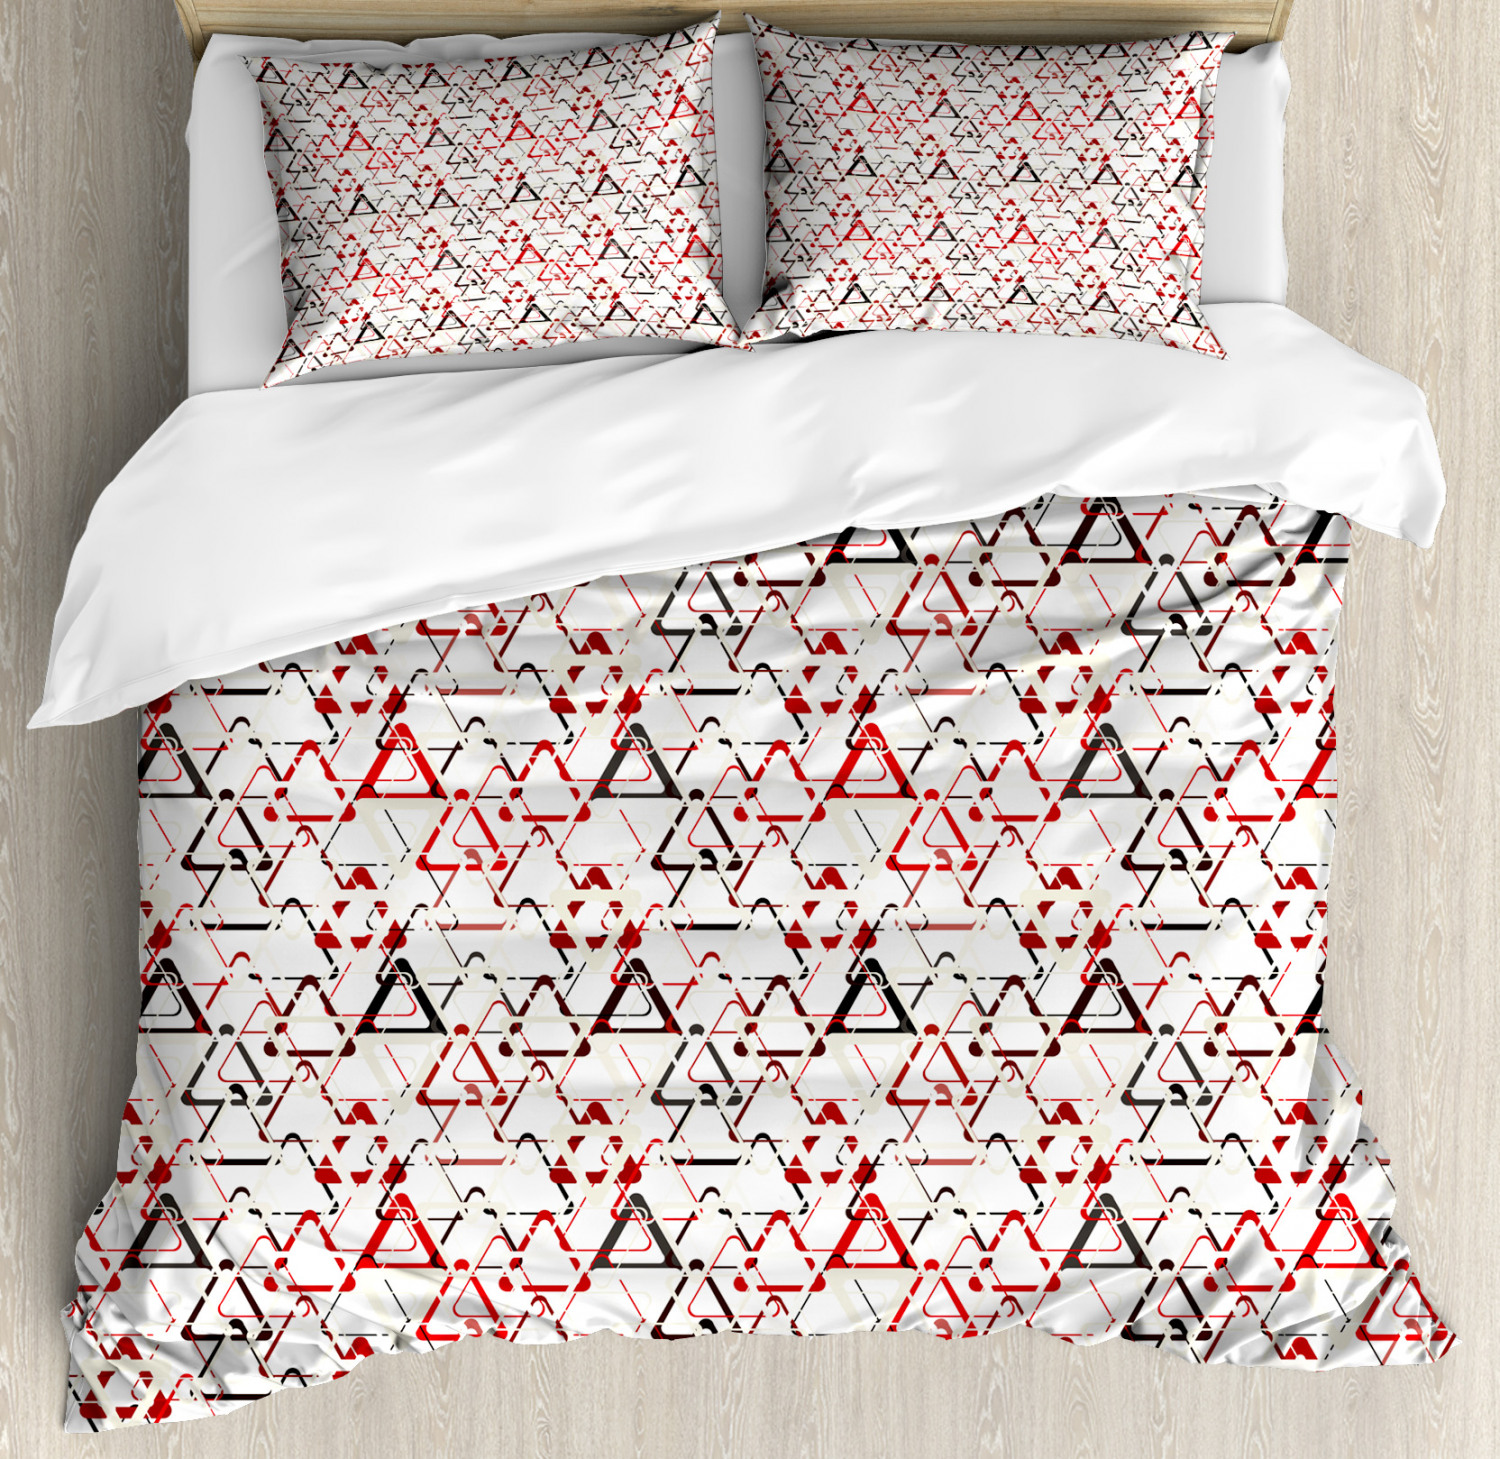 Abstract Duvet Cover Set with Pillow Shams Overlapping Triangles Print